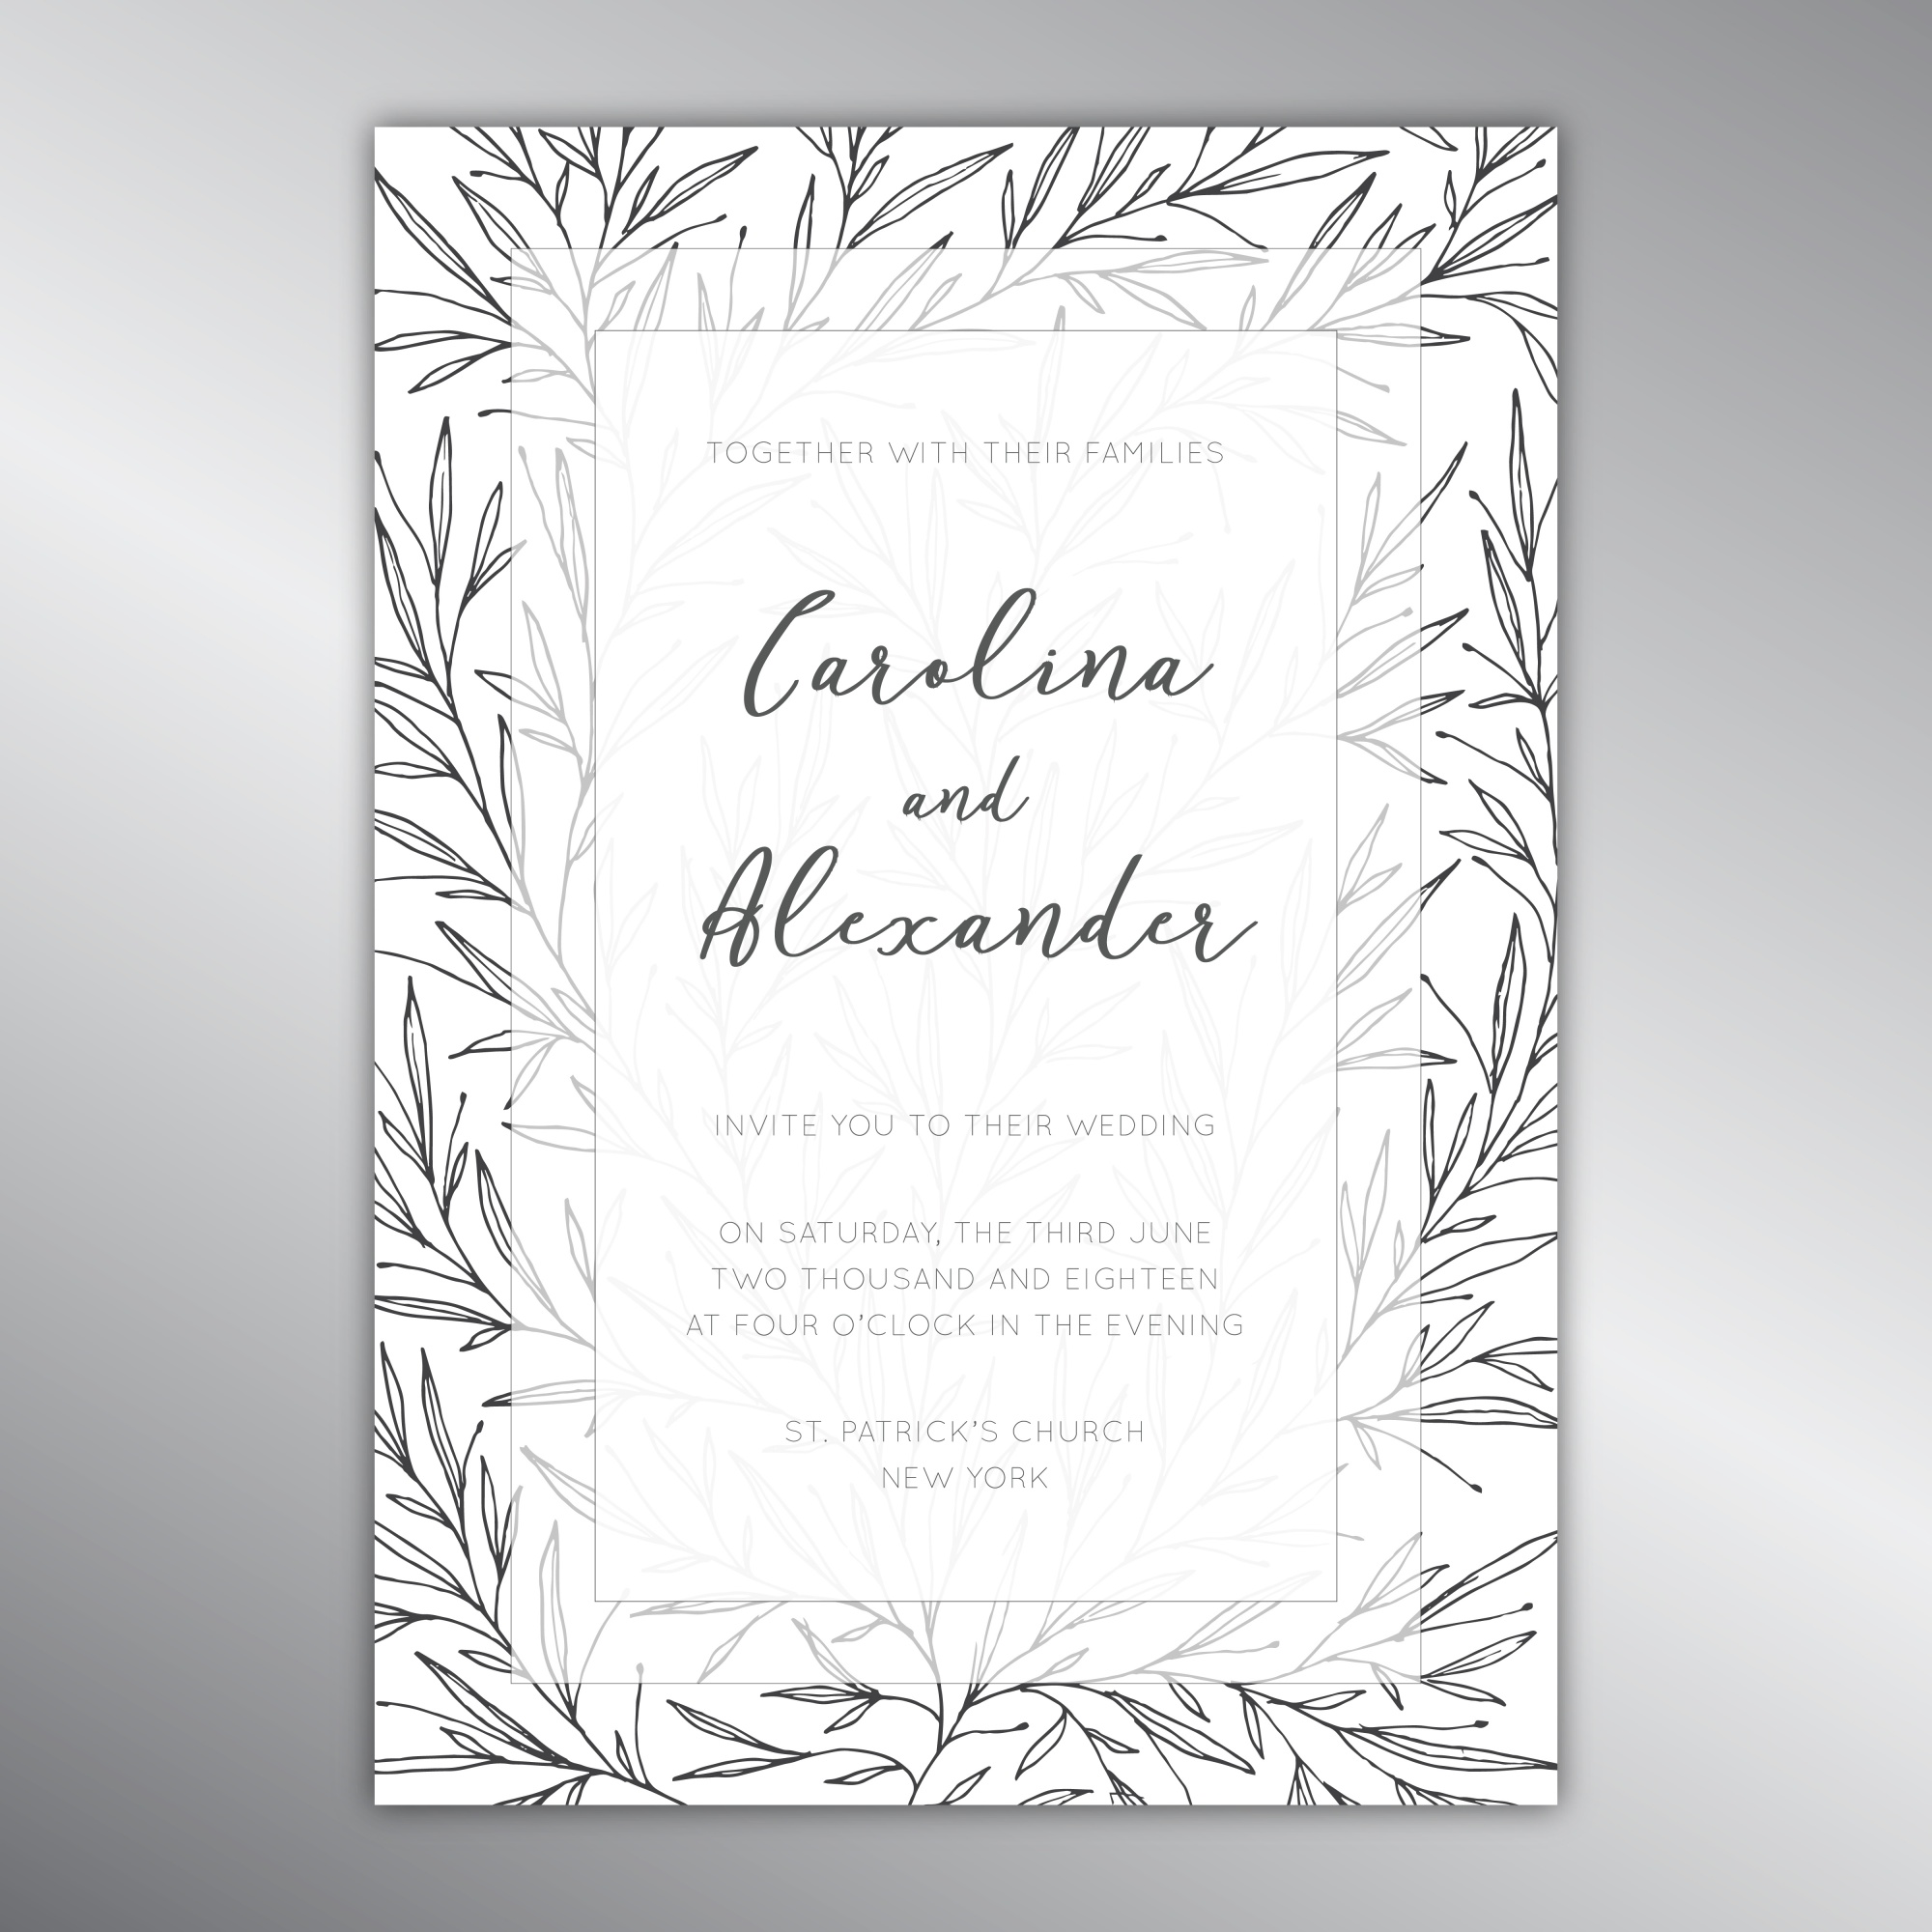 Wedding invitation template with a botanical pattern